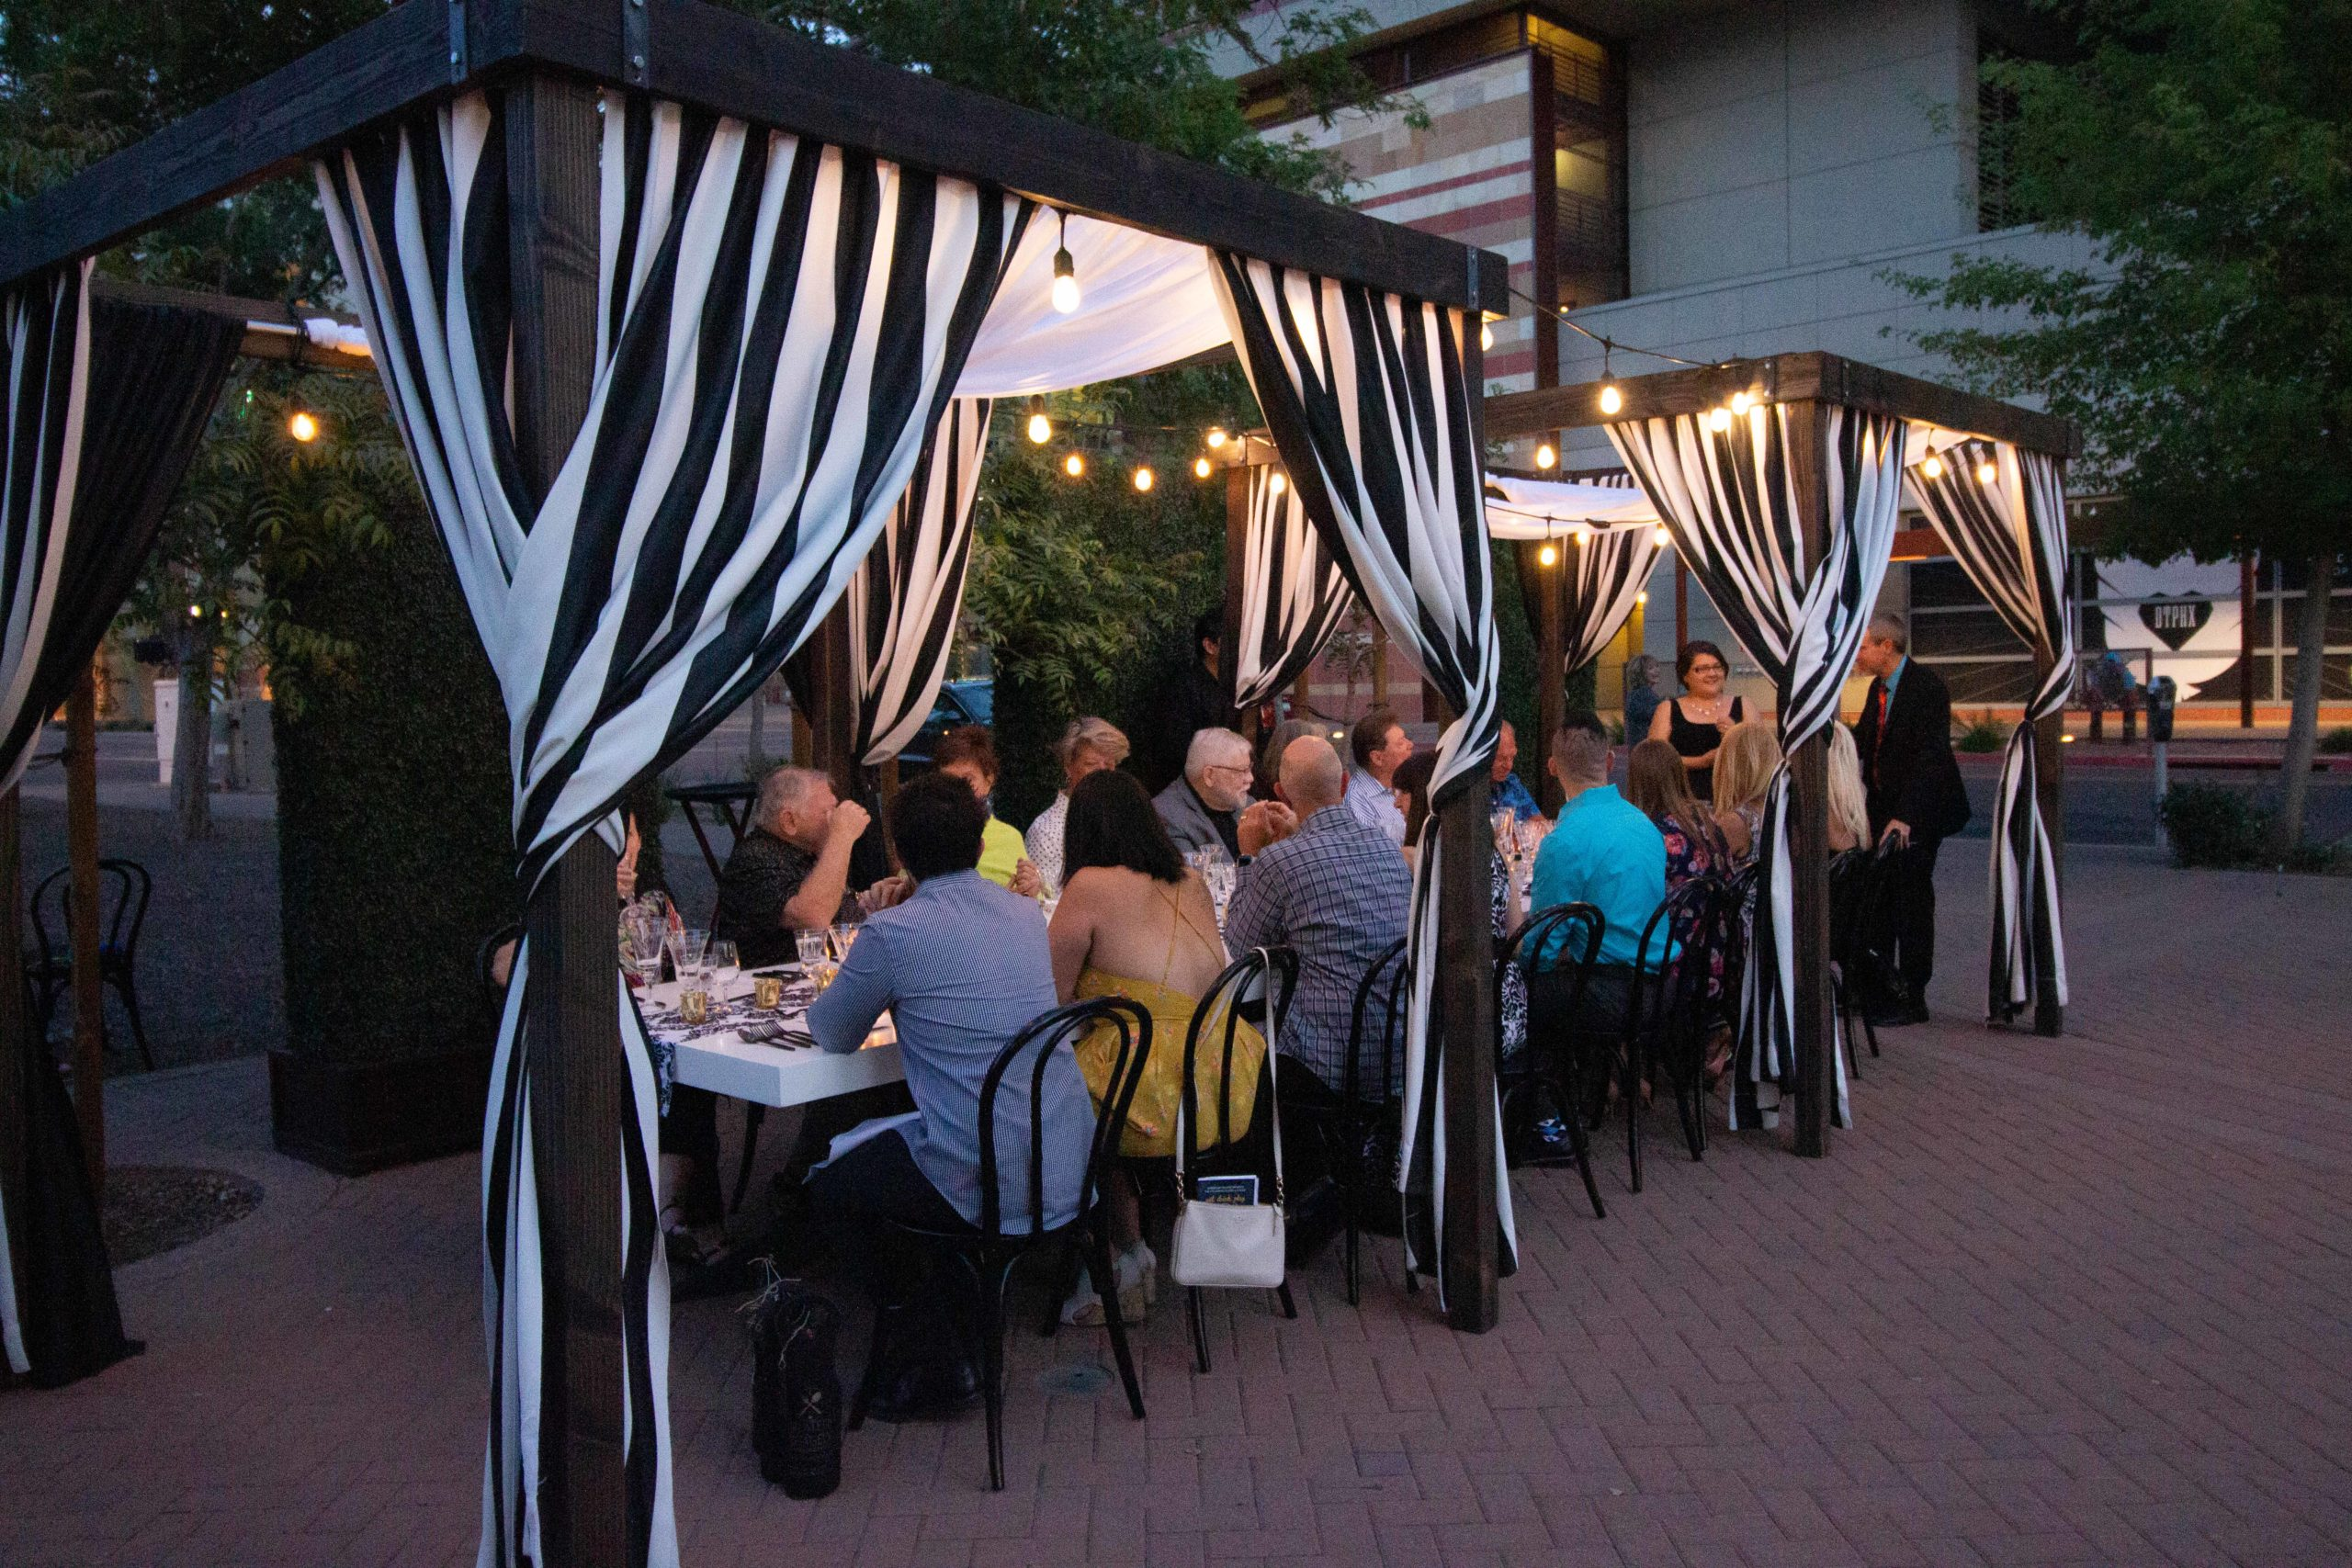 group at plated and staged event under outdoor canopy